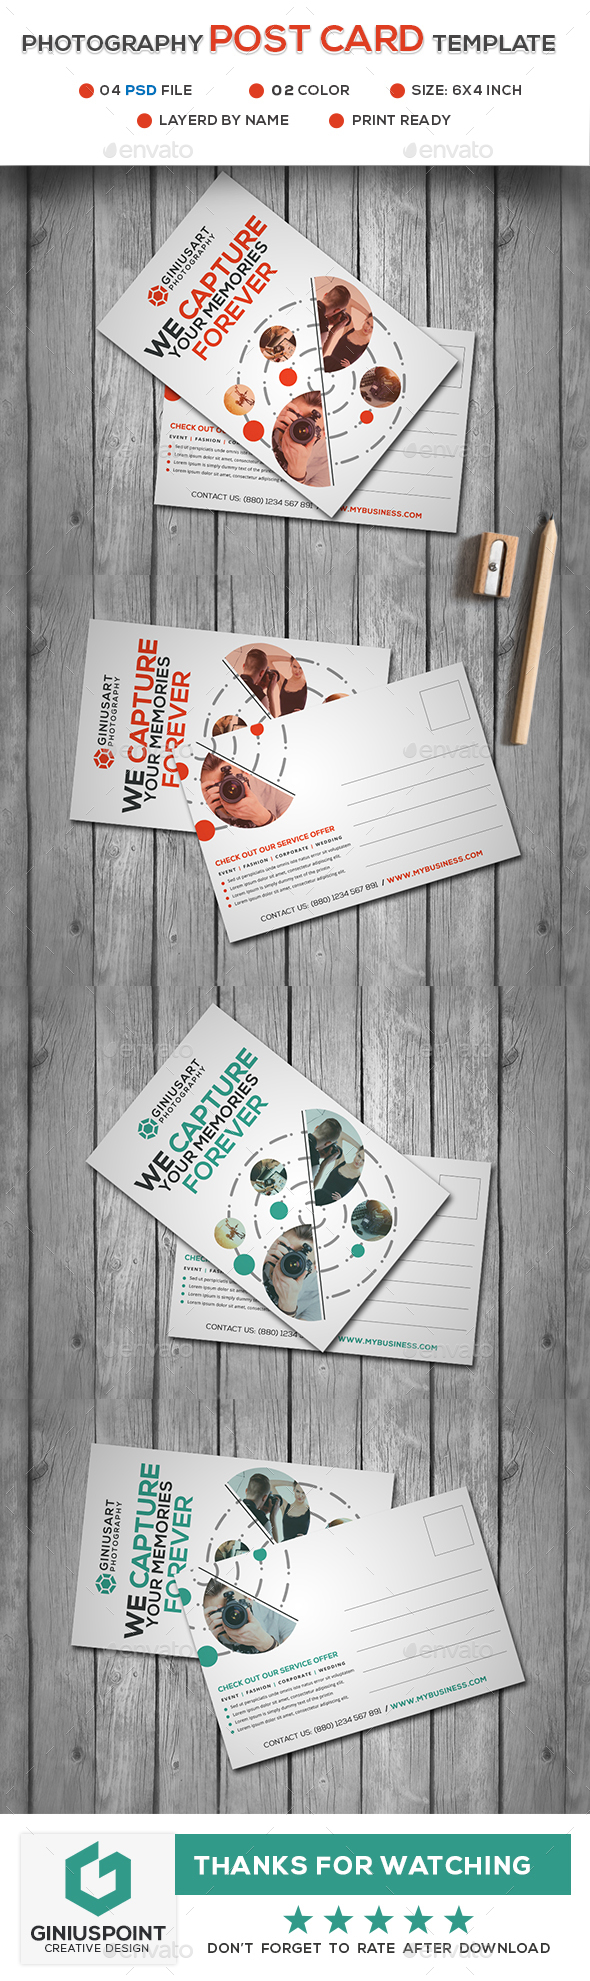 Photography Post Card Template - Cards & Invites Print Templates